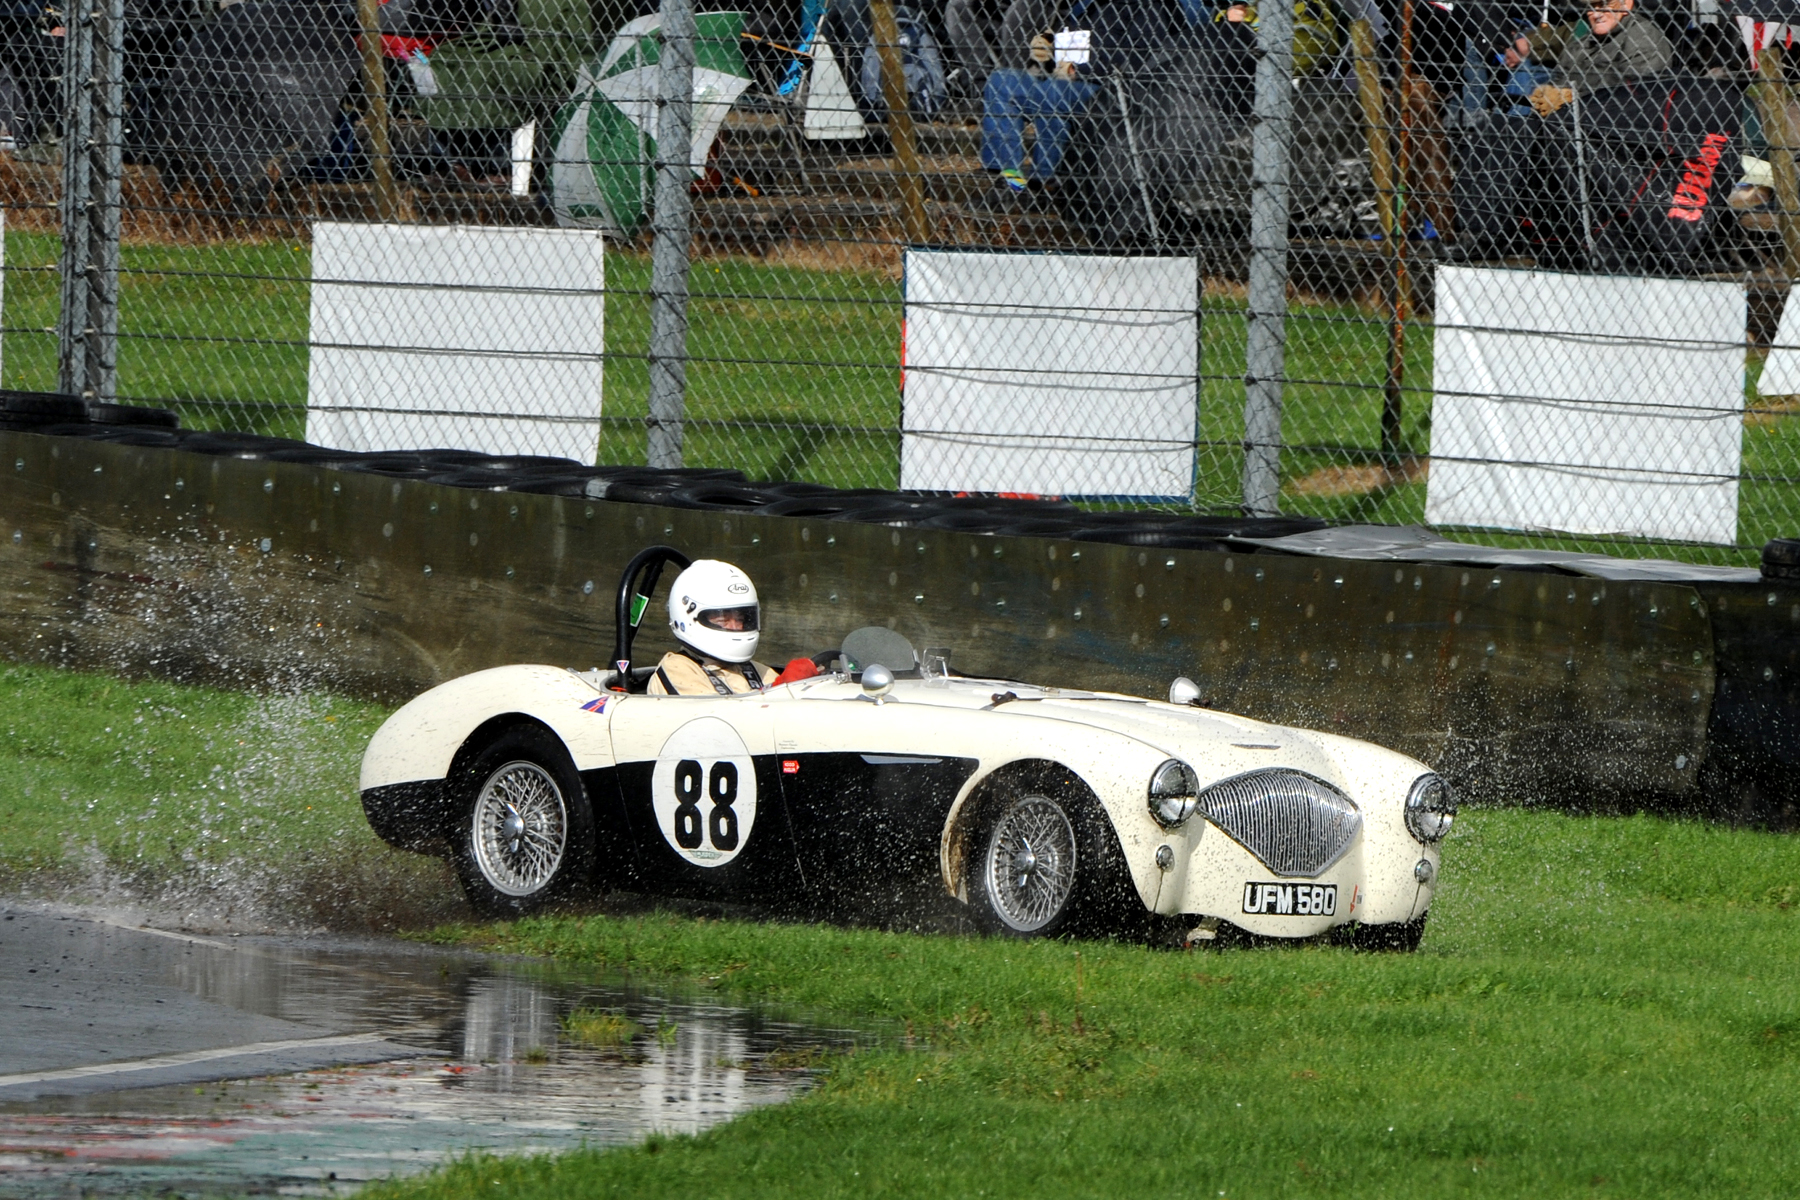 Into Quarry, braking too late, Jeremy Holden sensibly lets his Austin Healey run onto the grass. He returned safely to the track. I think this may be on his out lap following his pit stop when the brakes had cooled.                                Photo Jeff Bloxham